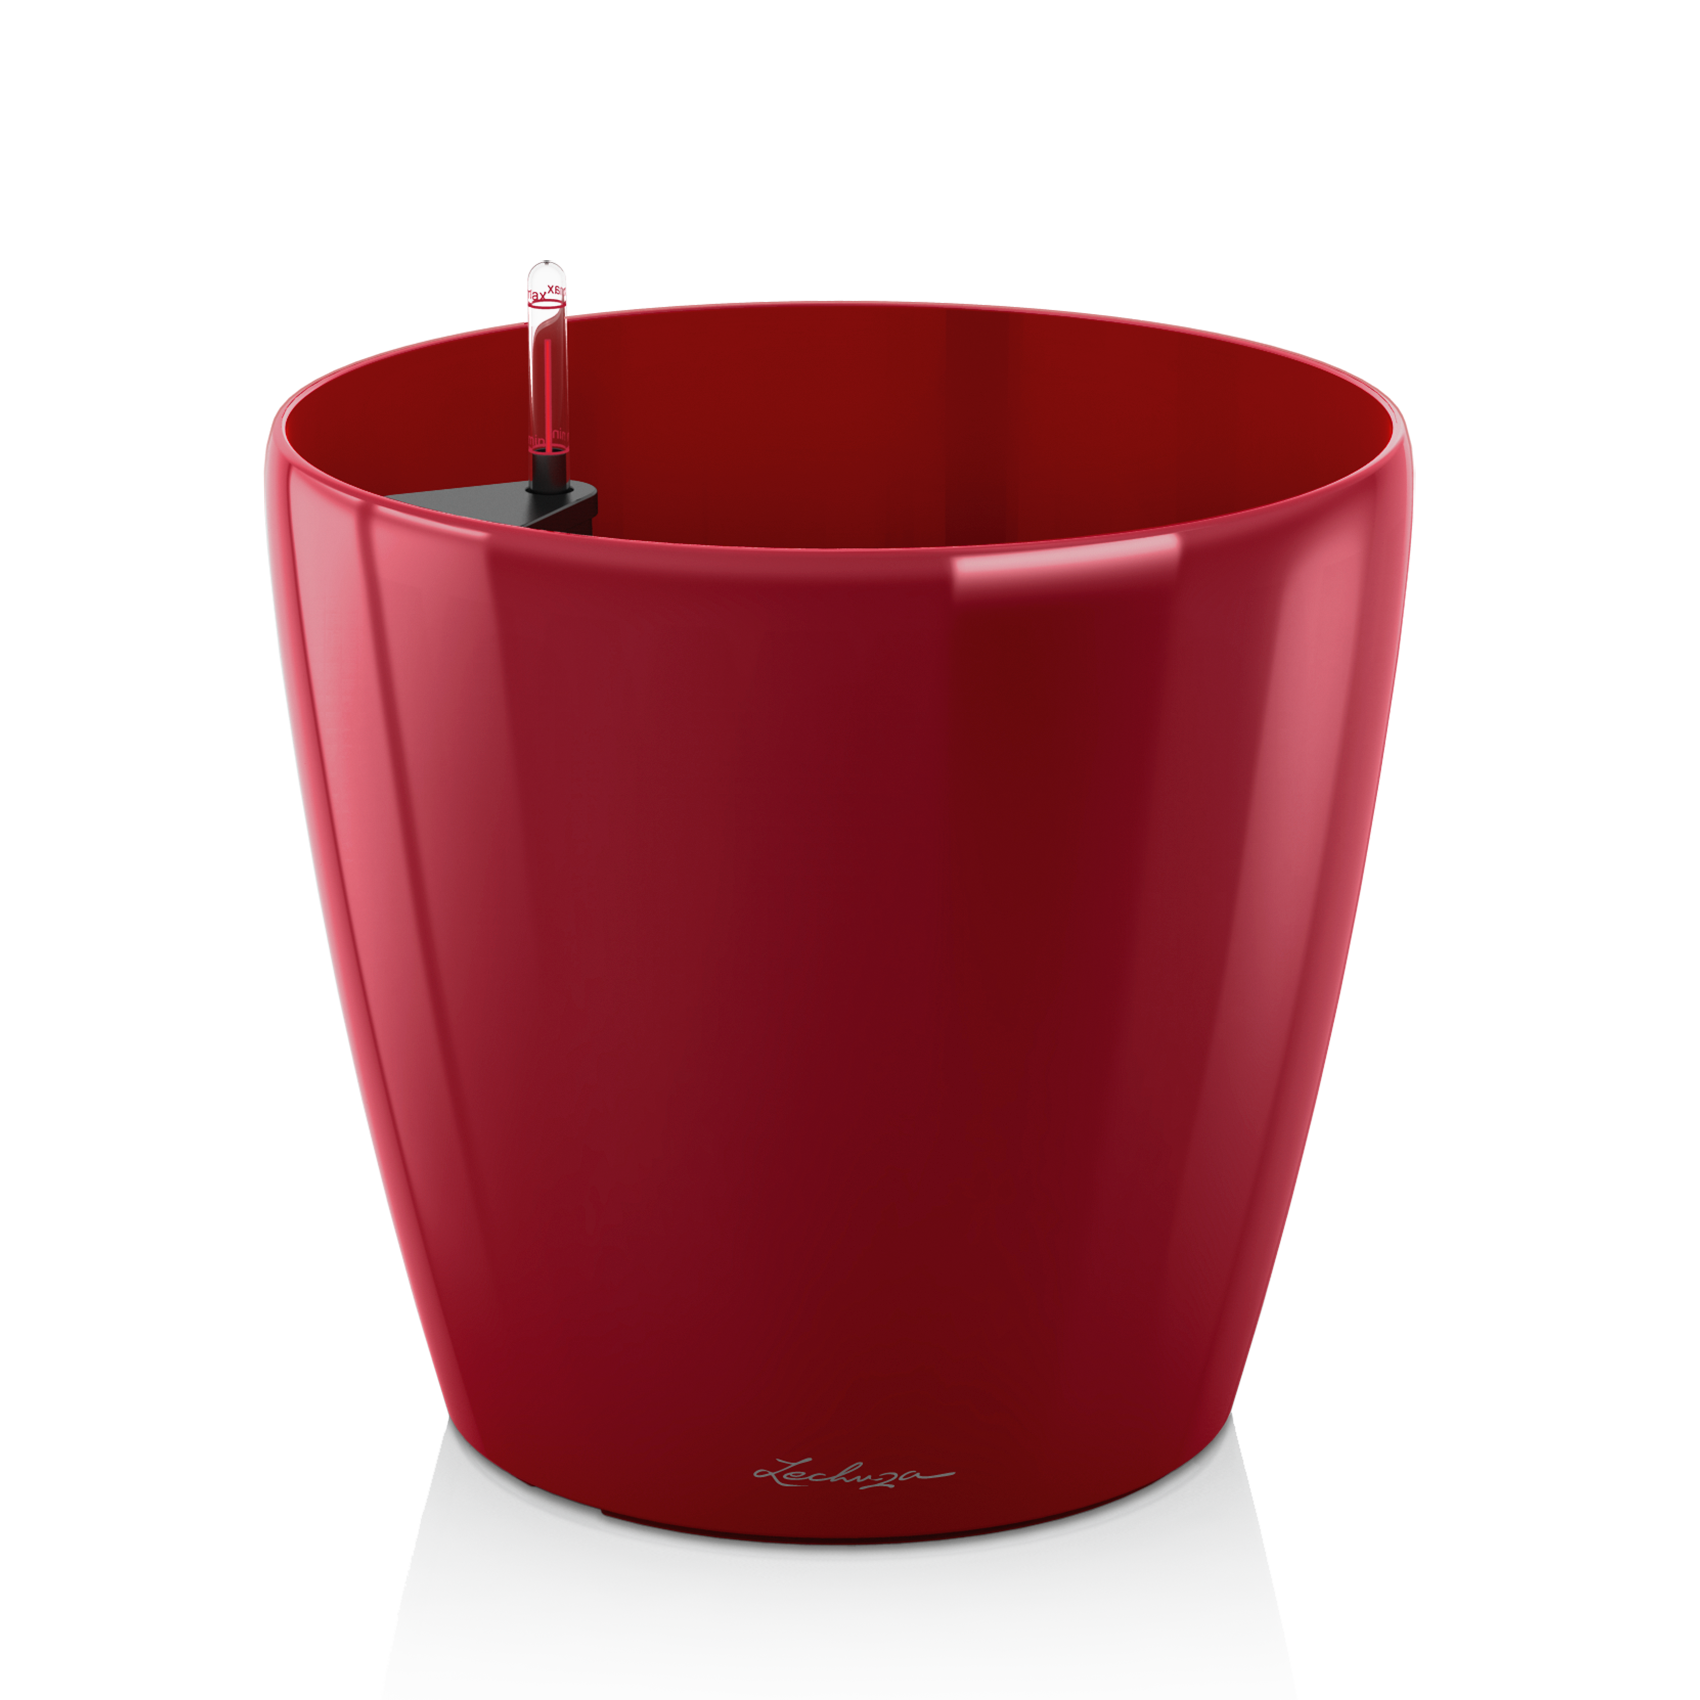 CLASSICO 60 scarlet red high-gloss